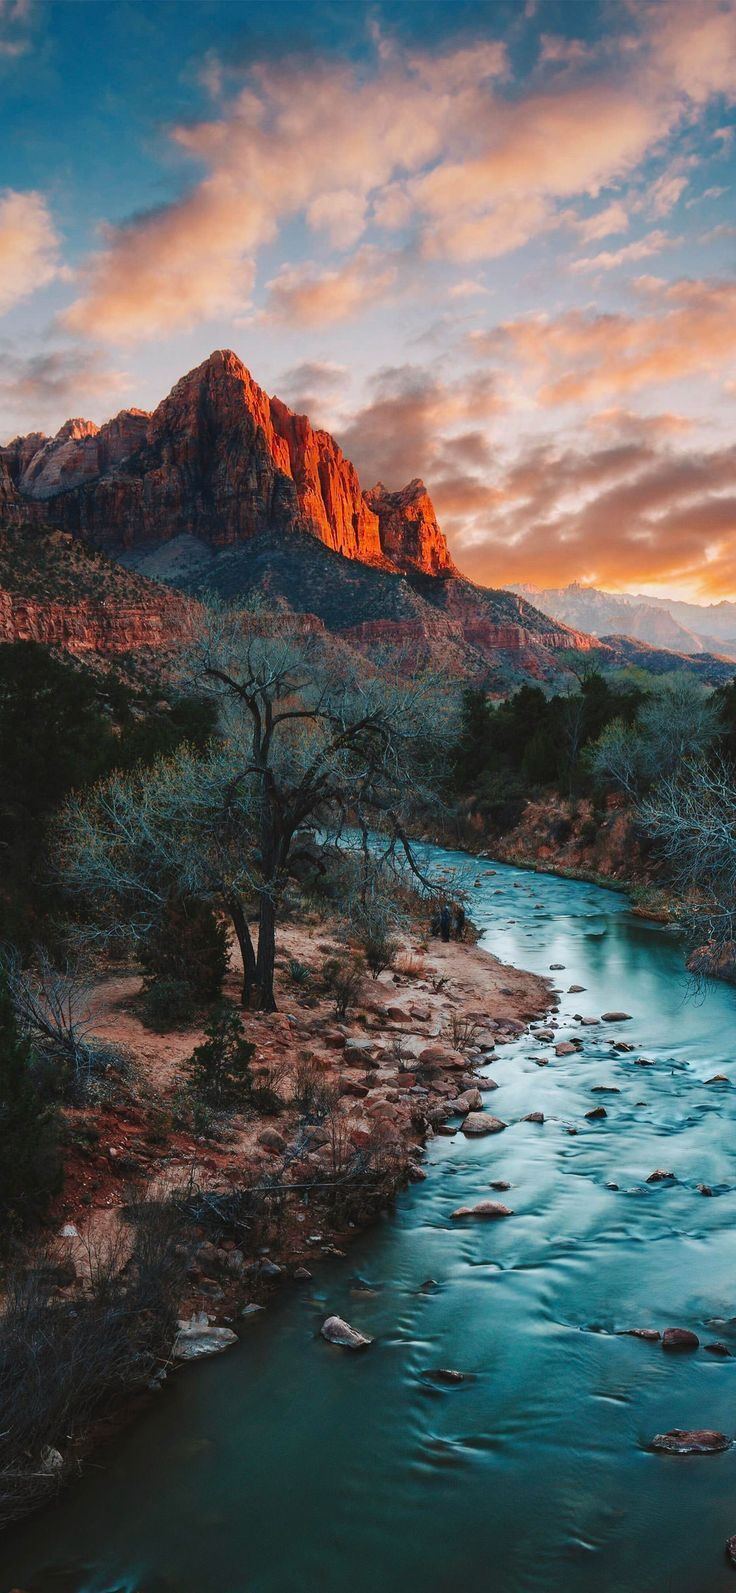 Zion National Park Beautiful Landscape Wallpaper Scenery Pictures Beautiful Wallpapers Backgrounds